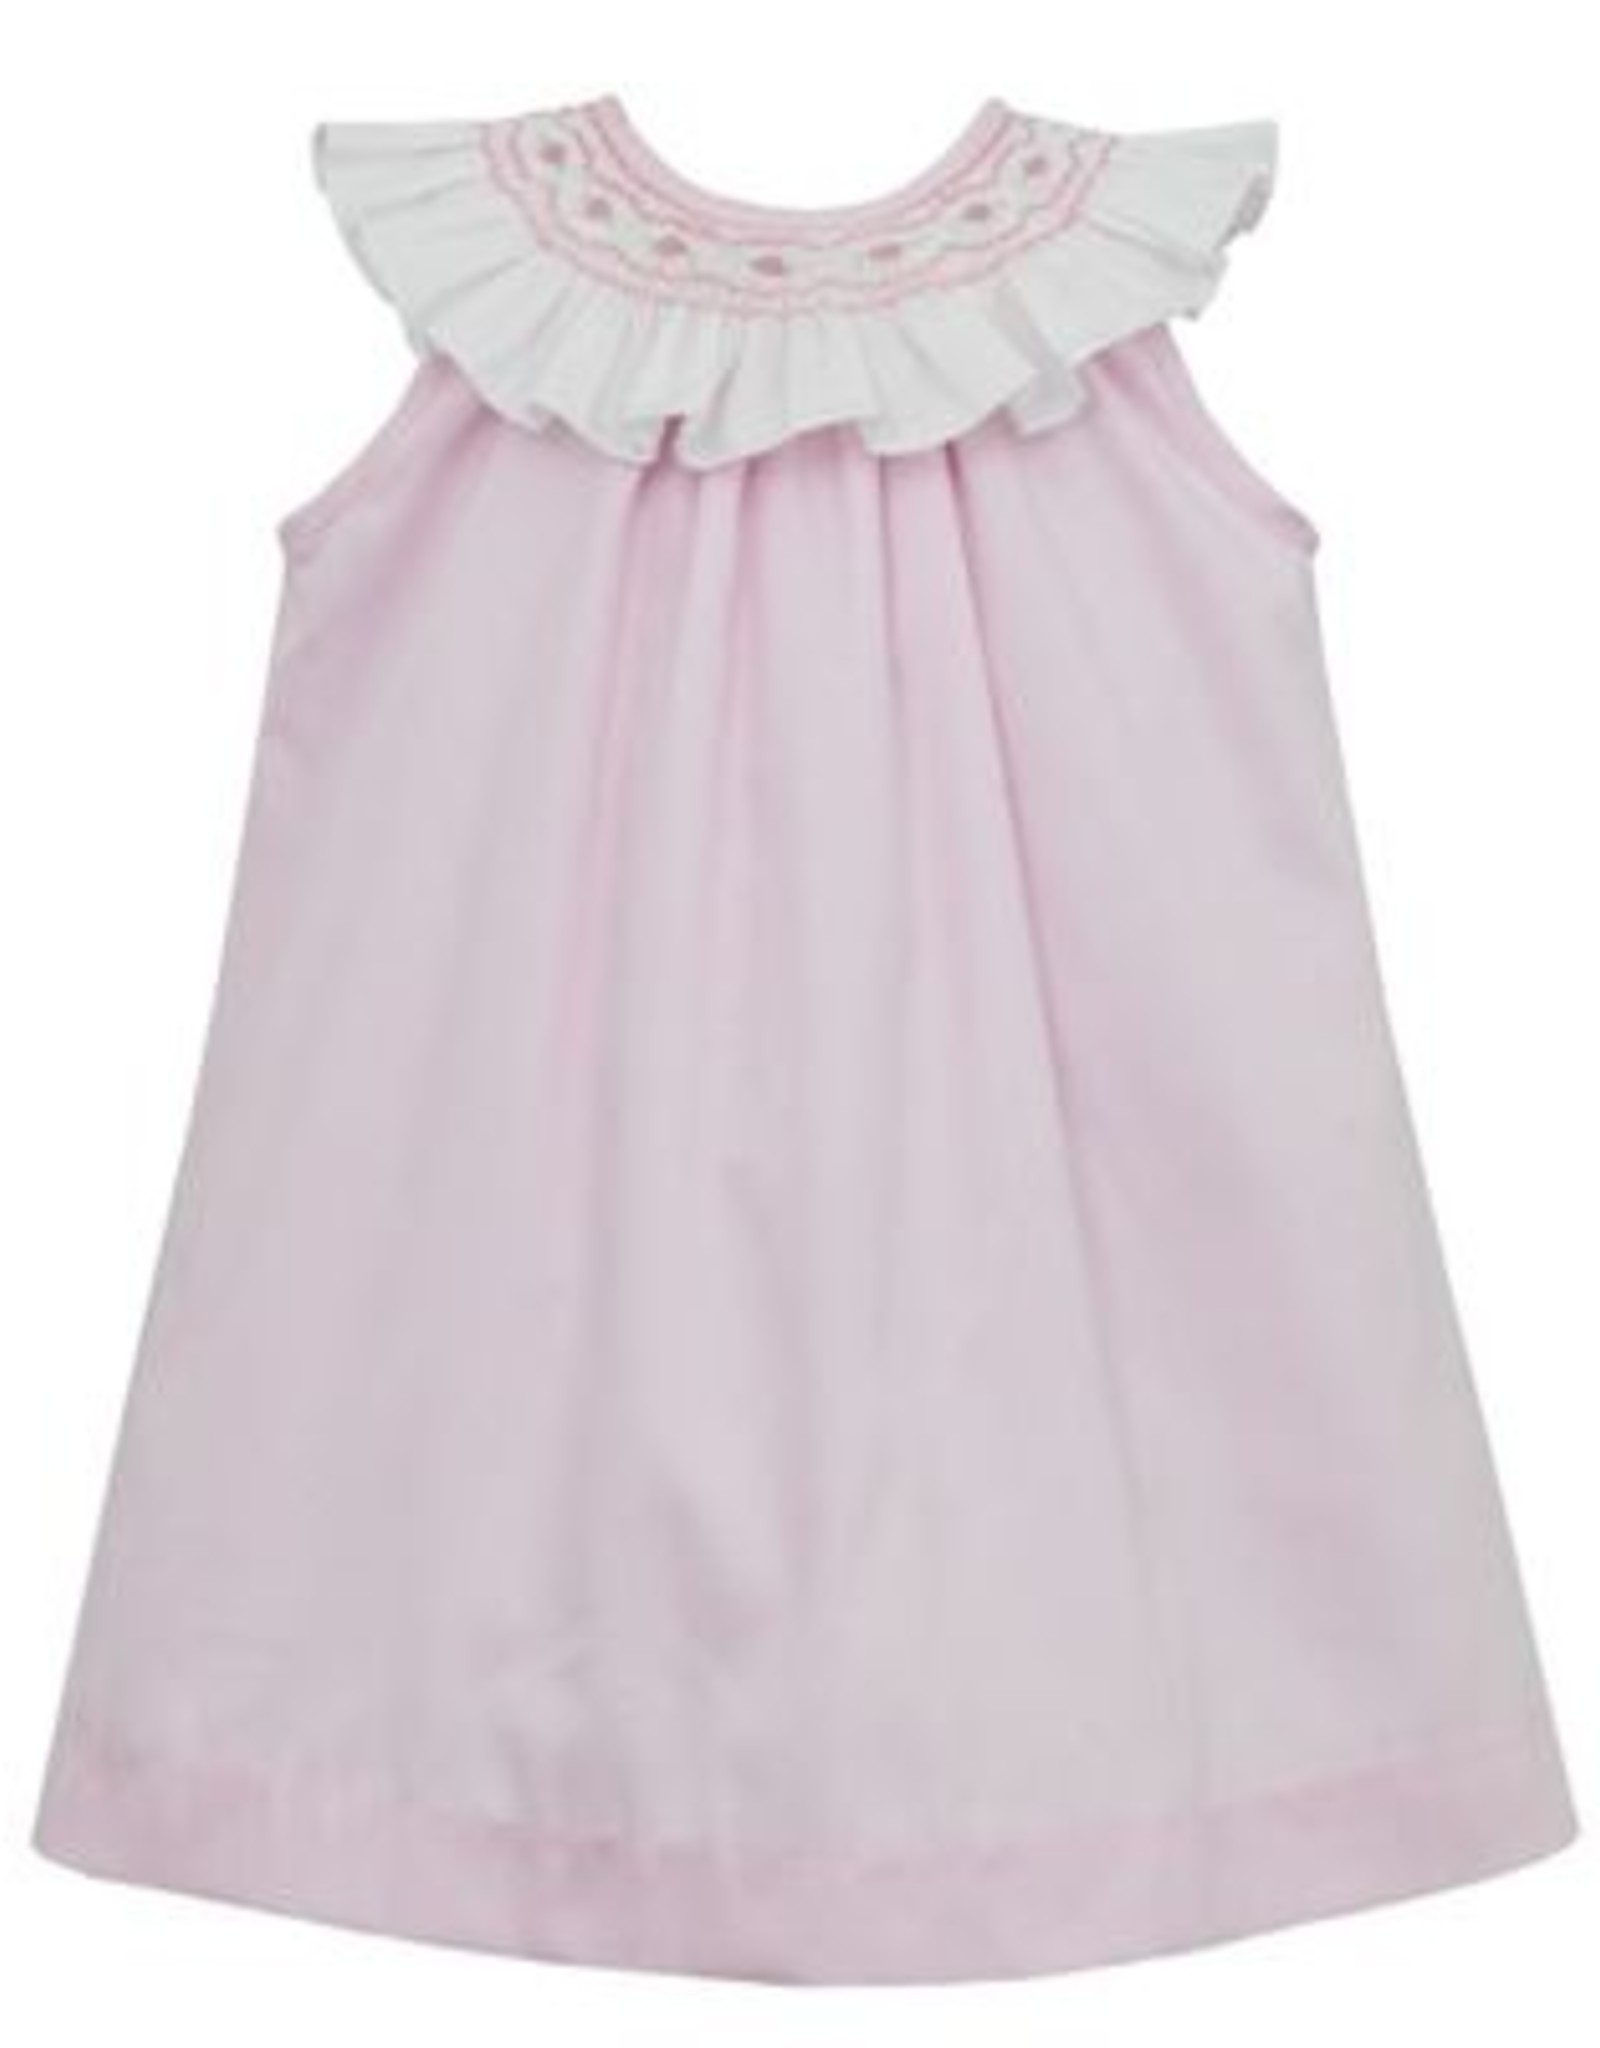 Anavini Pink Emma A-line Dress With Smocked Collar